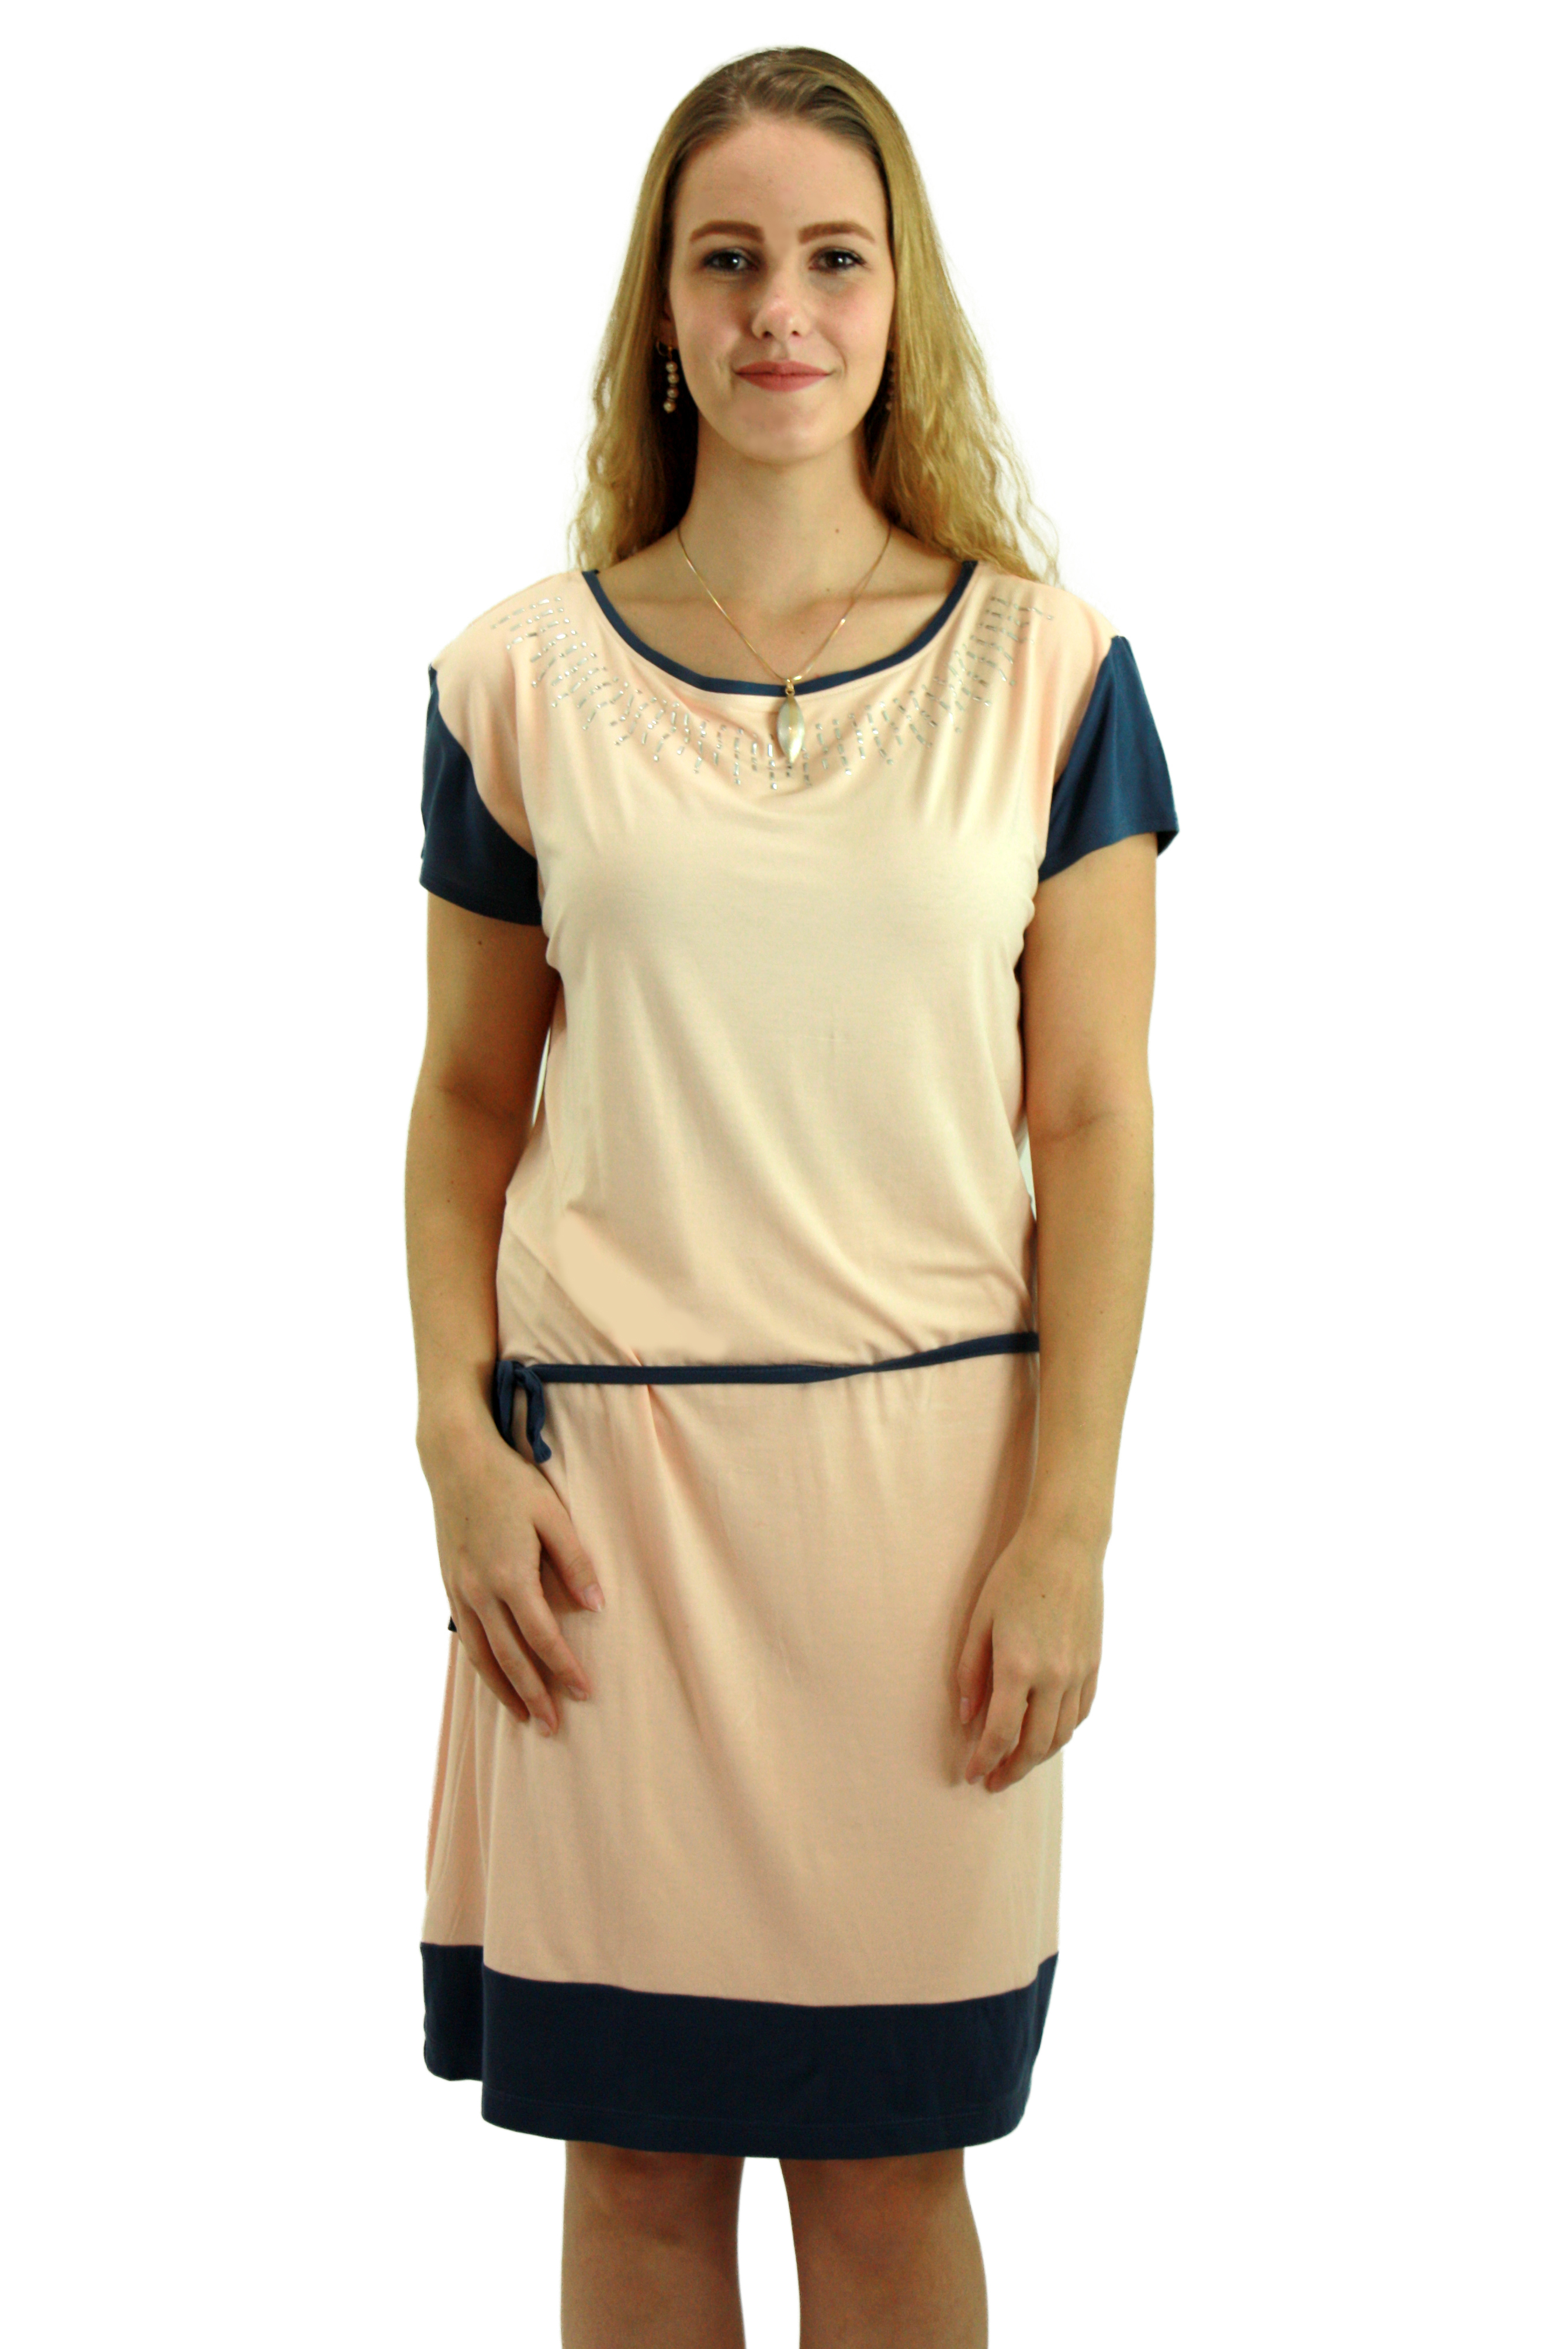 Pink and Grey tunic dress with embellished neckline LYPG008